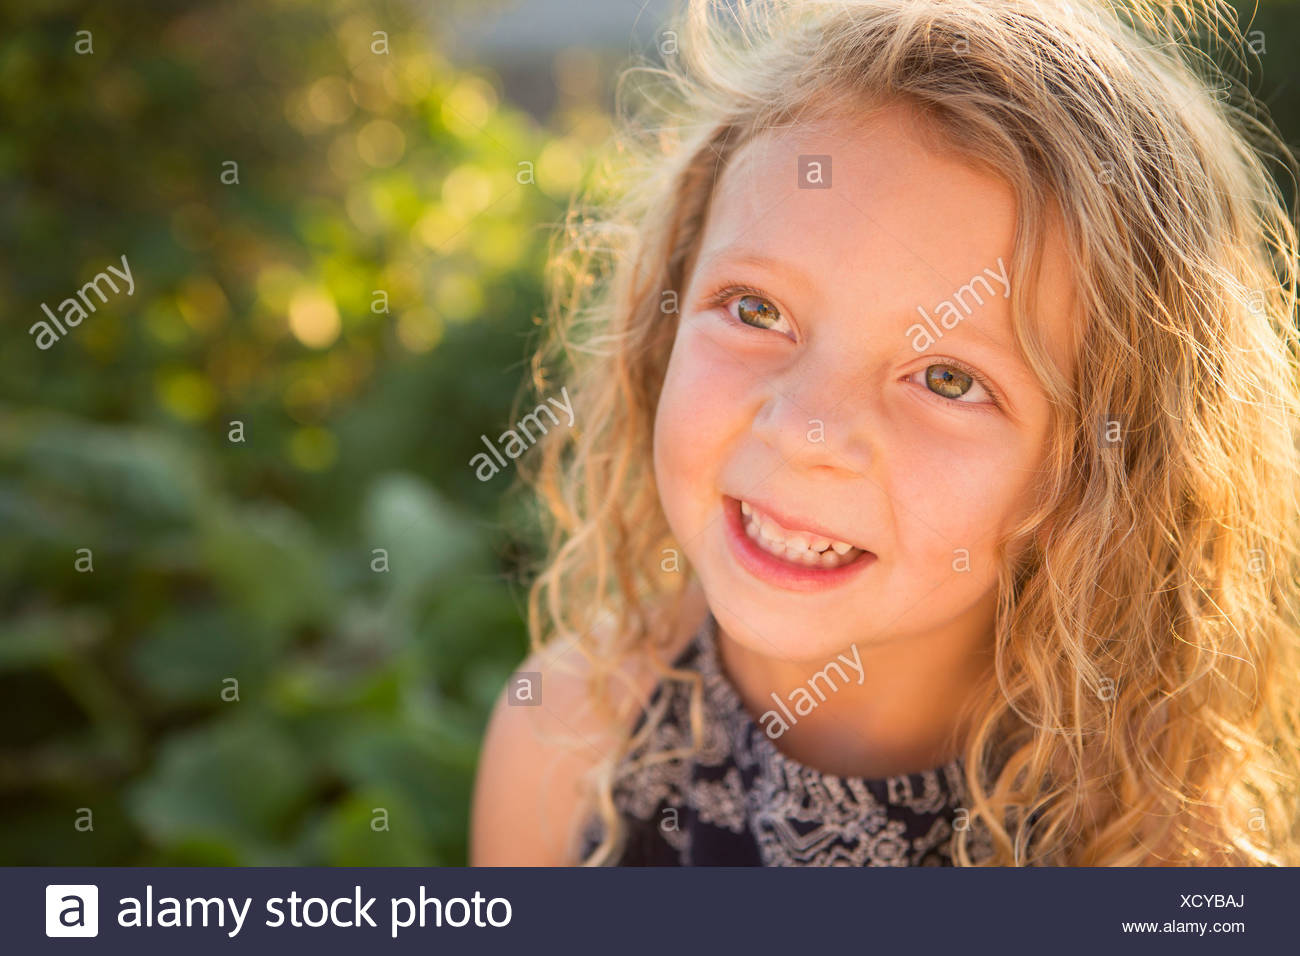 A young girl with long red curly hair outdoors in a garden. - Stock Image